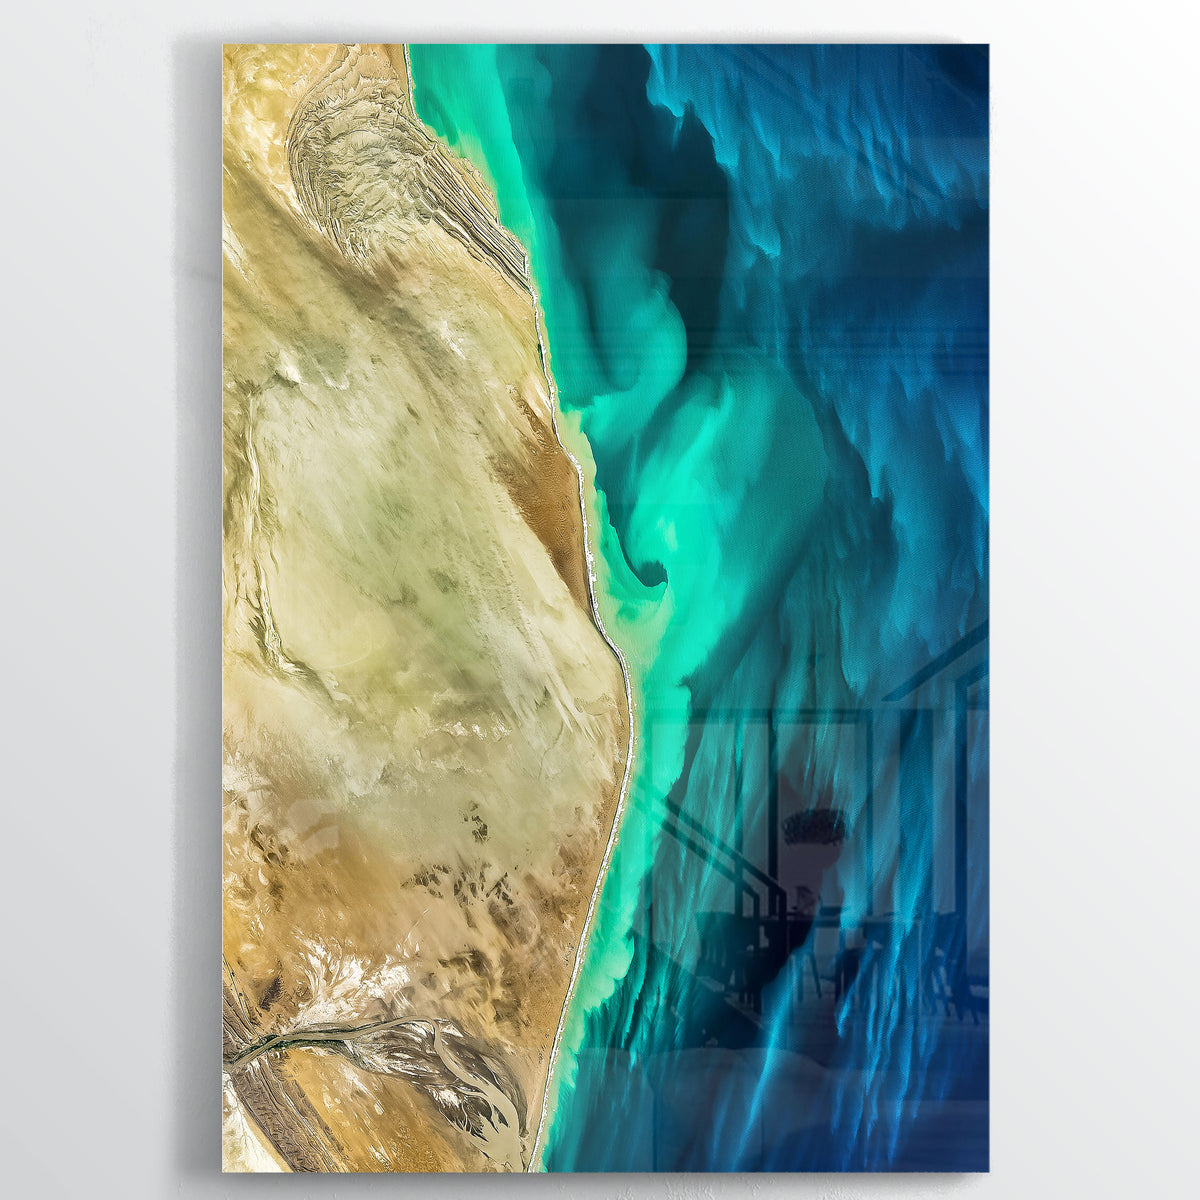 Makran Coast Earth Photography - Floating Acrylic Art